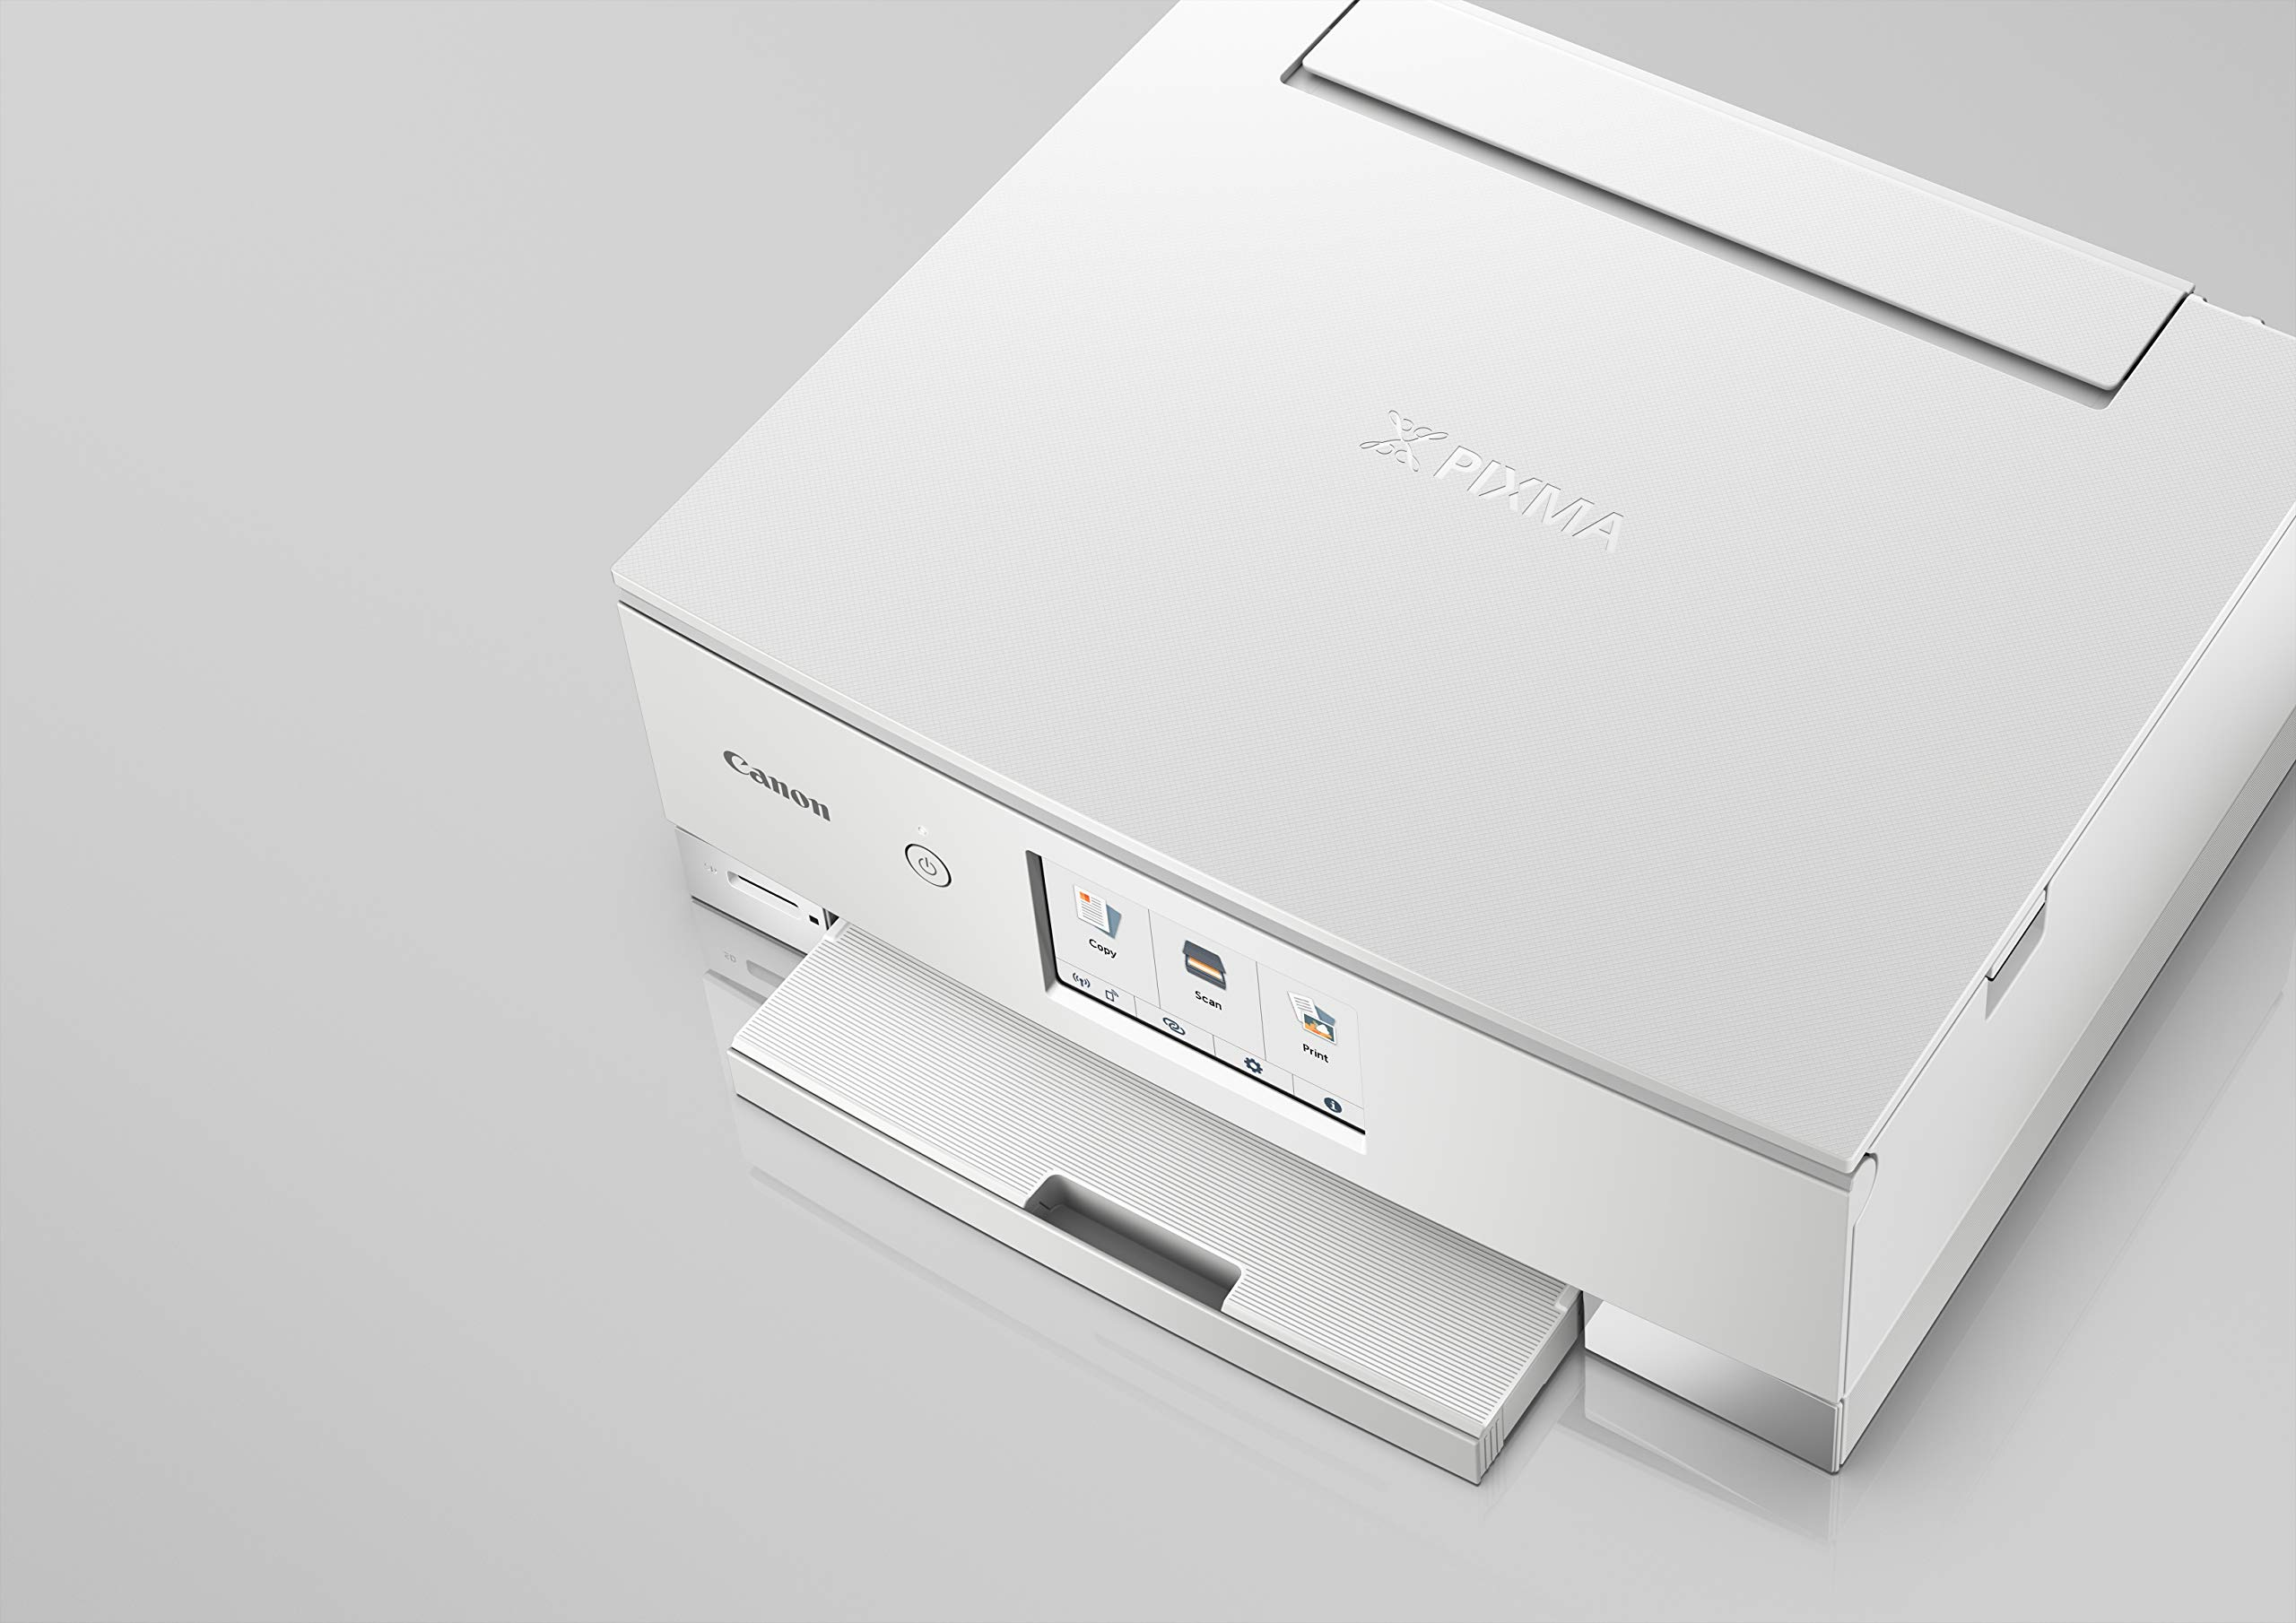 Canon TS8220 Wireless All in One Photo Printer with Scannier and Copier, Mobile Printing, White by Canon (Image #8)